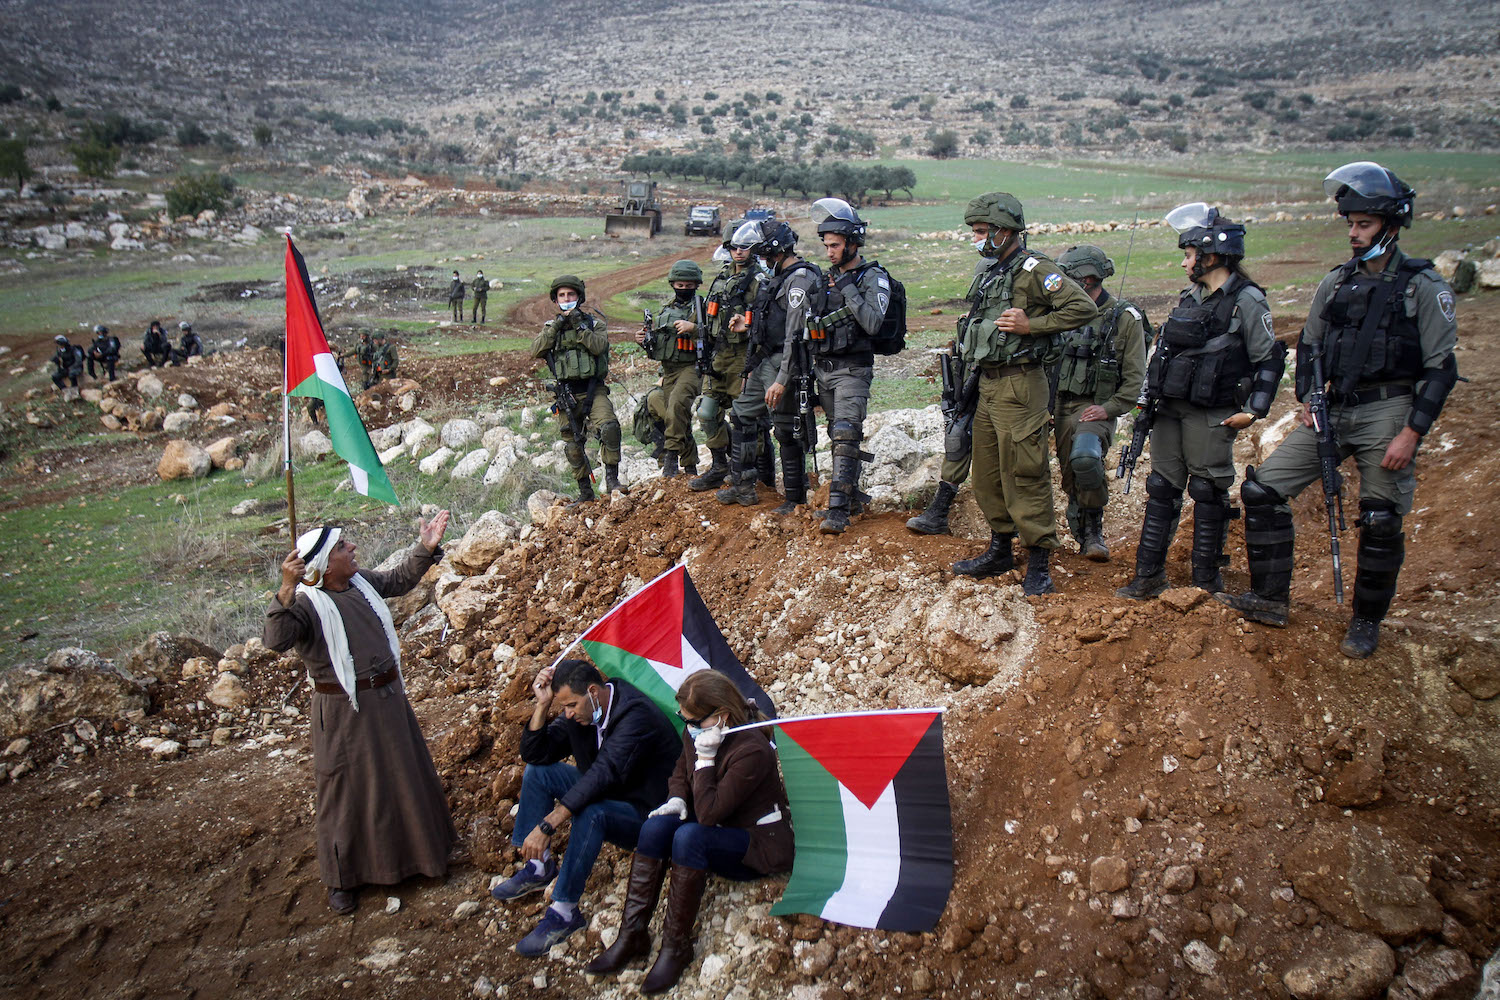 Palestinians hold a protest against a new settlement outpost near the village of Beit Dajan, West Bank, November 27, 2020. (Nasser Ishtayeh/Flash90)